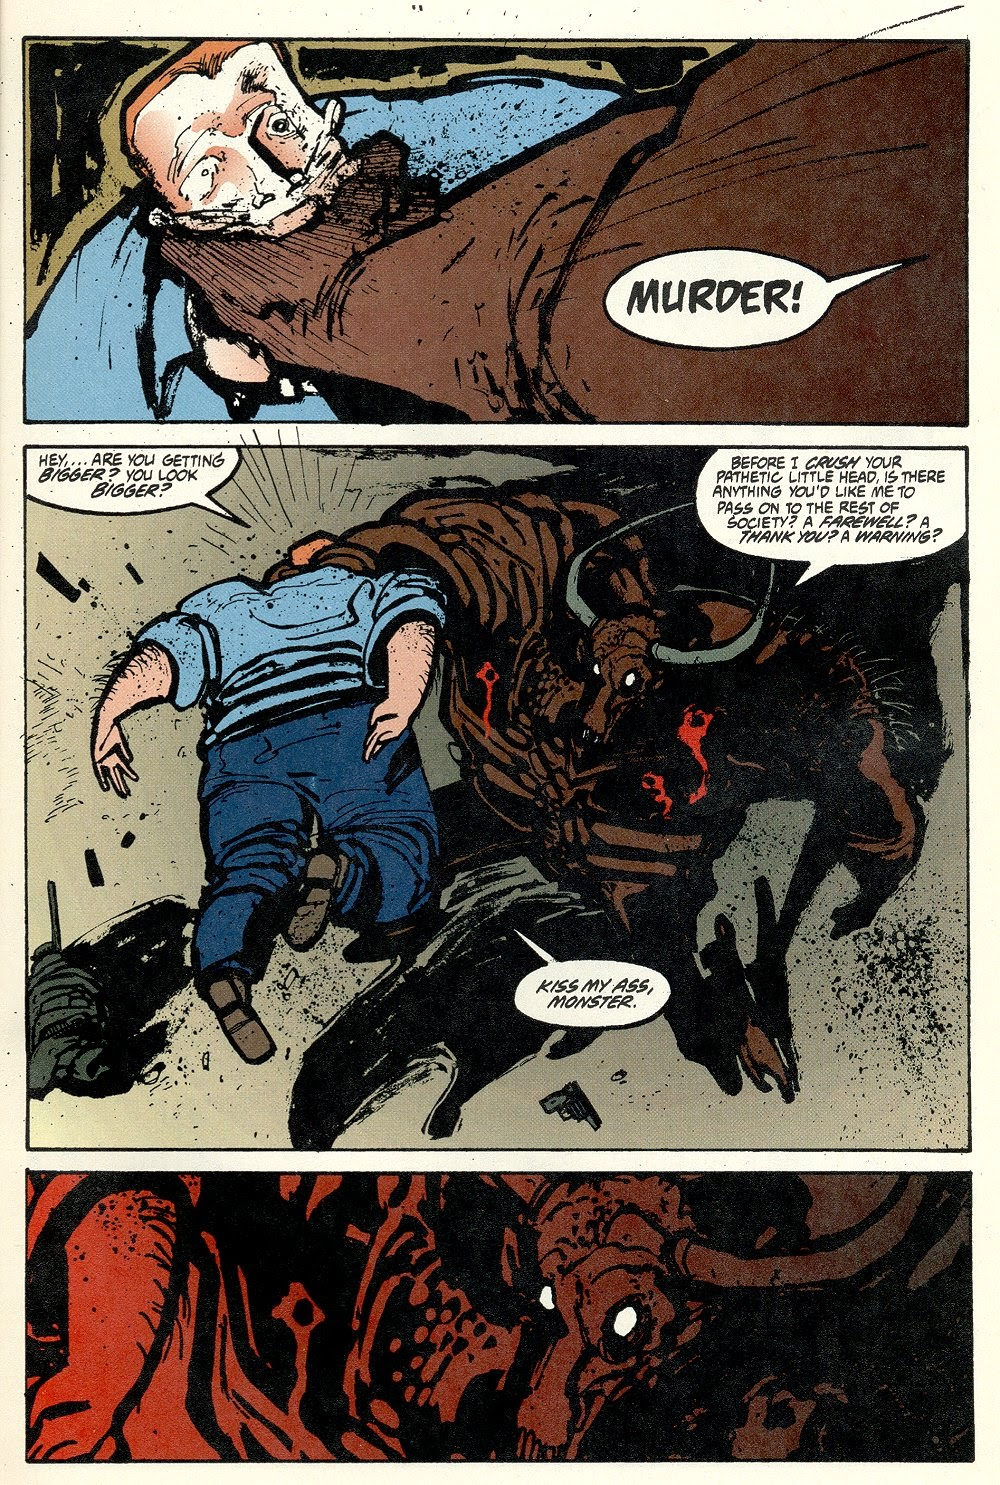 Read online Ted McKeever's Metropol comic -  Issue #11 - 5